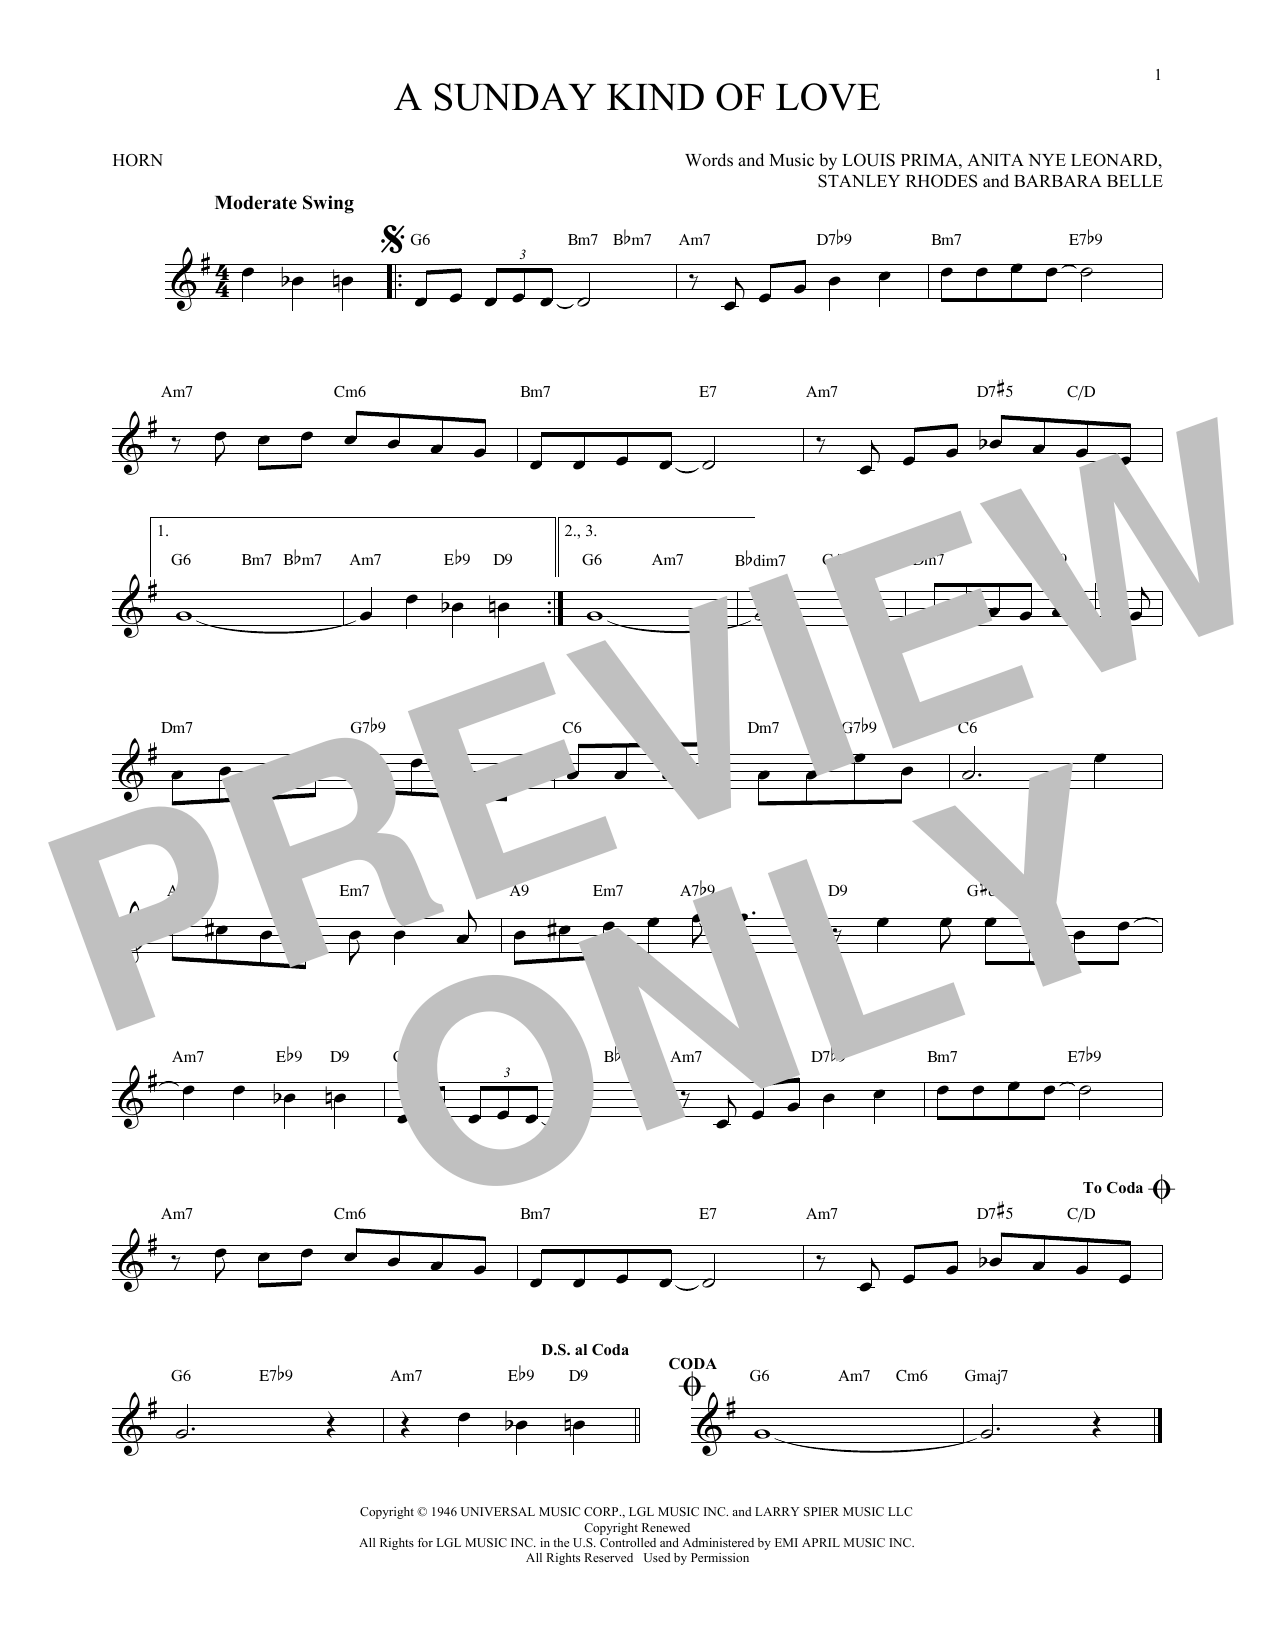 A Sunday Kind Of Love (French Horn Solo)